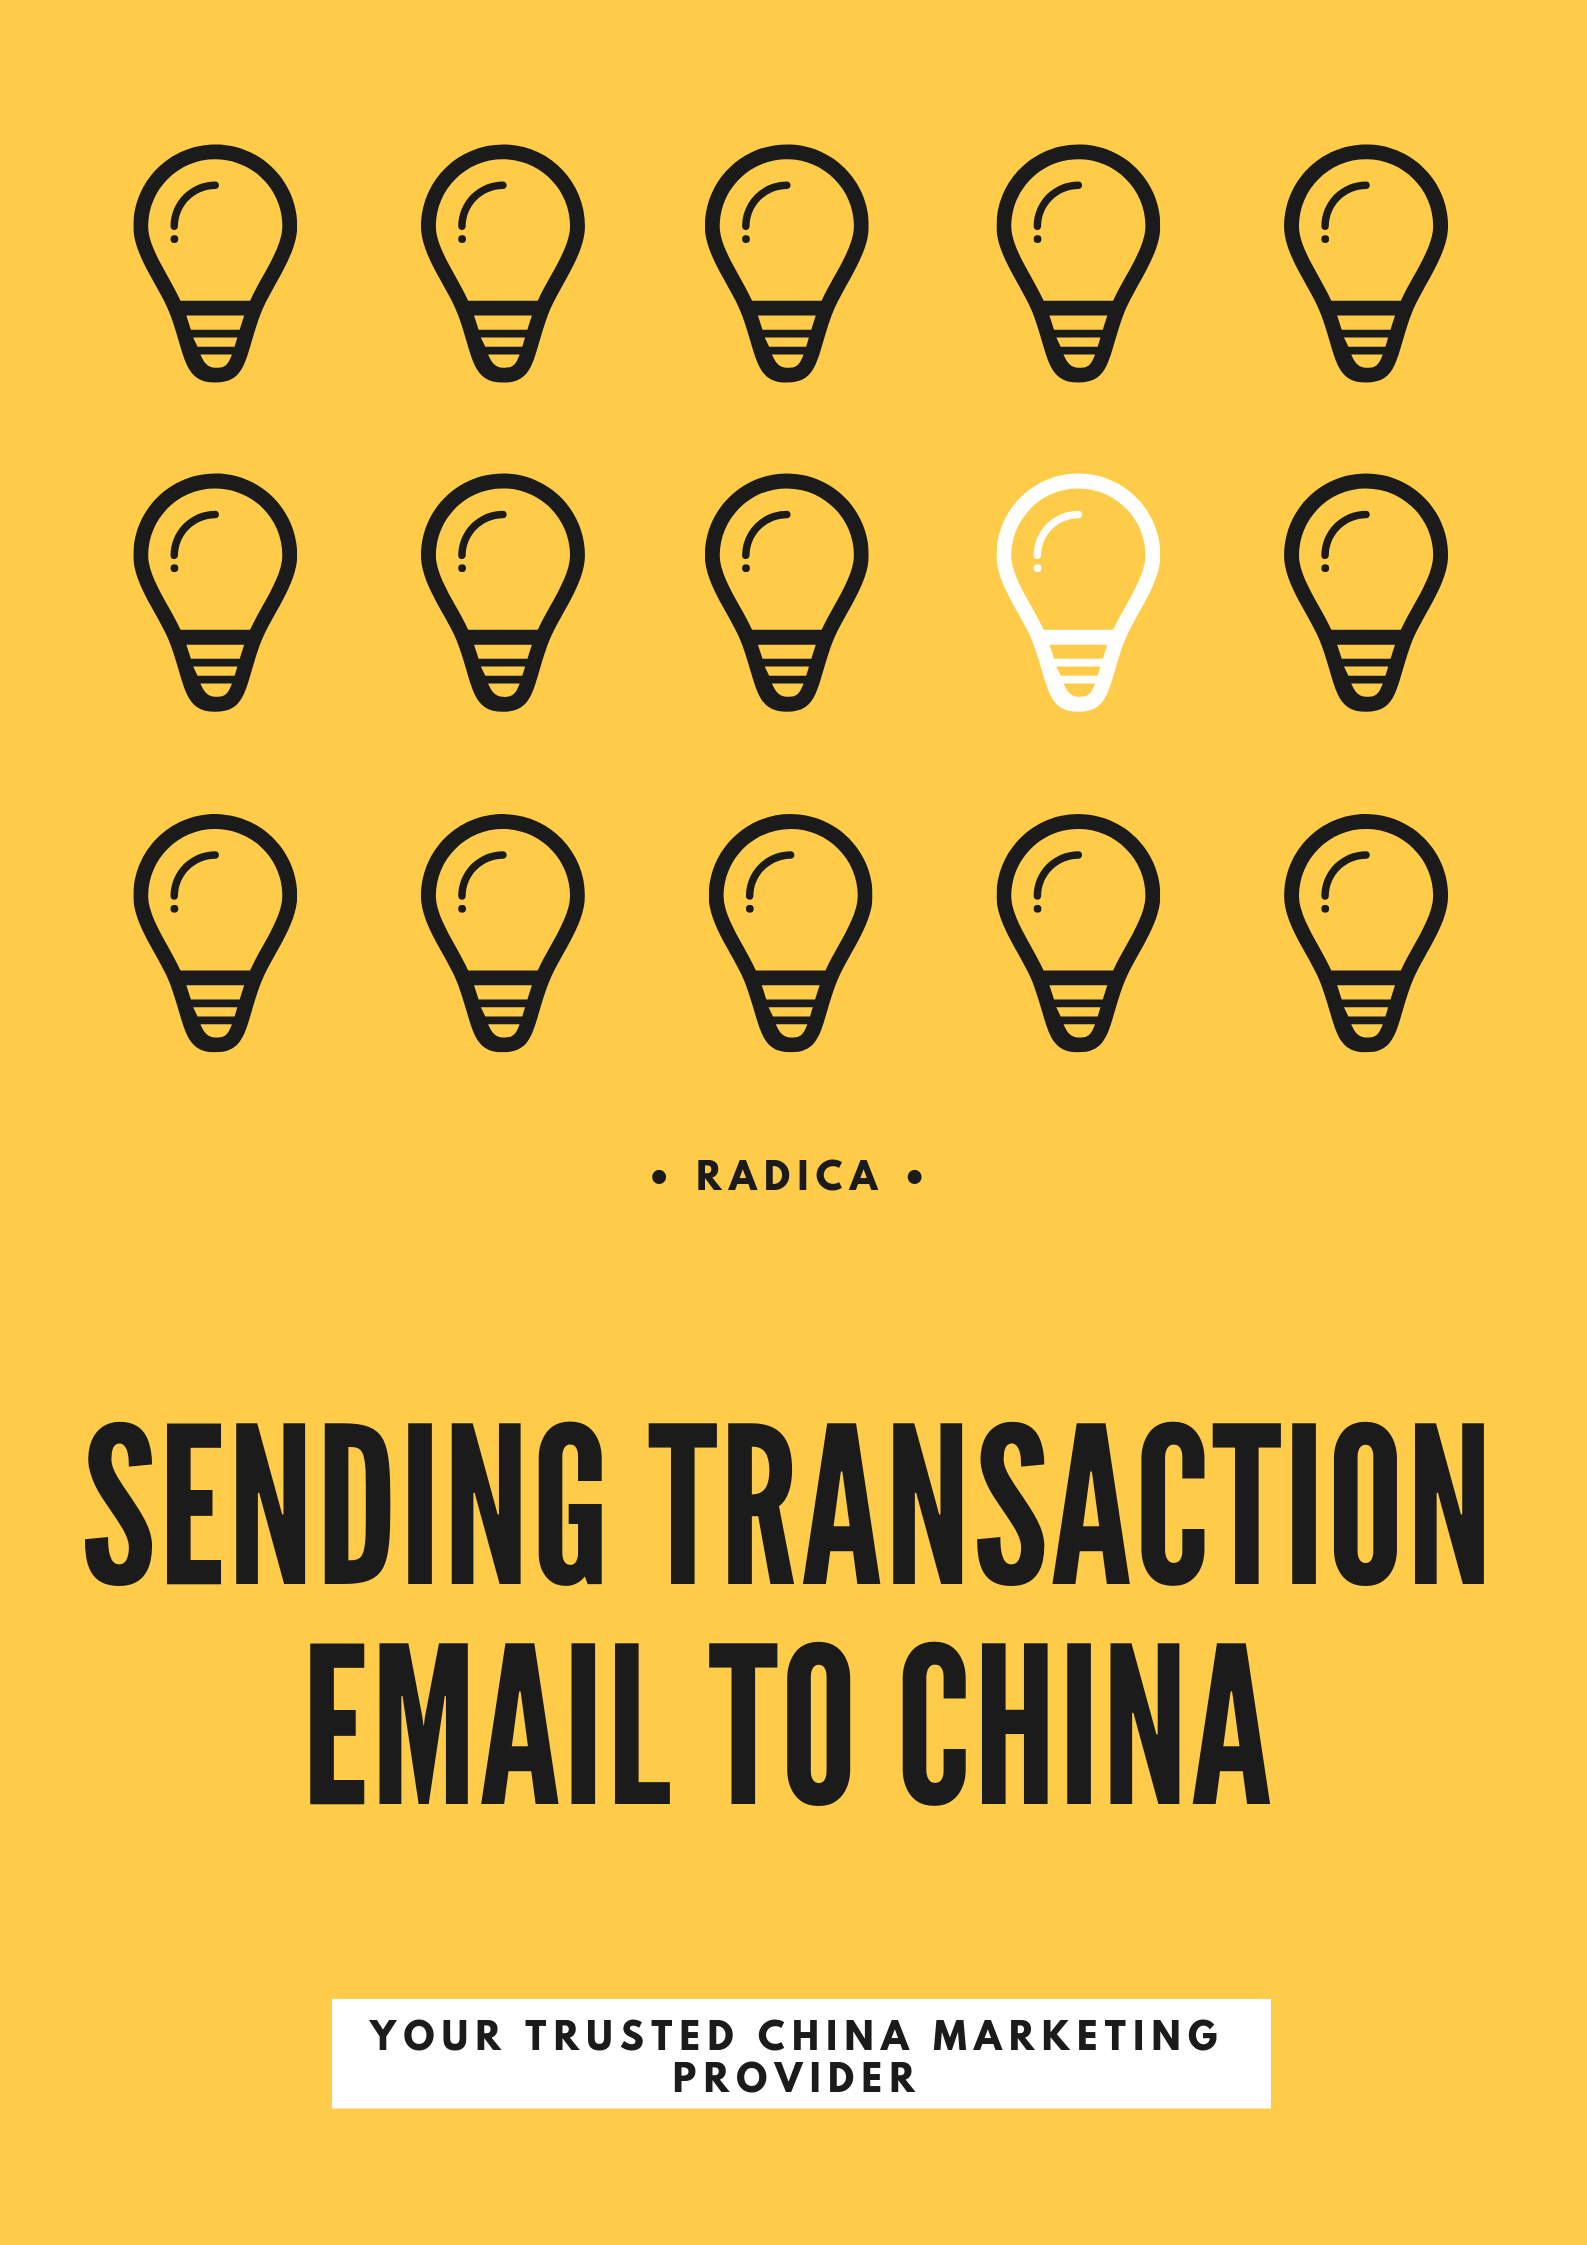 sending transaction email to china.png